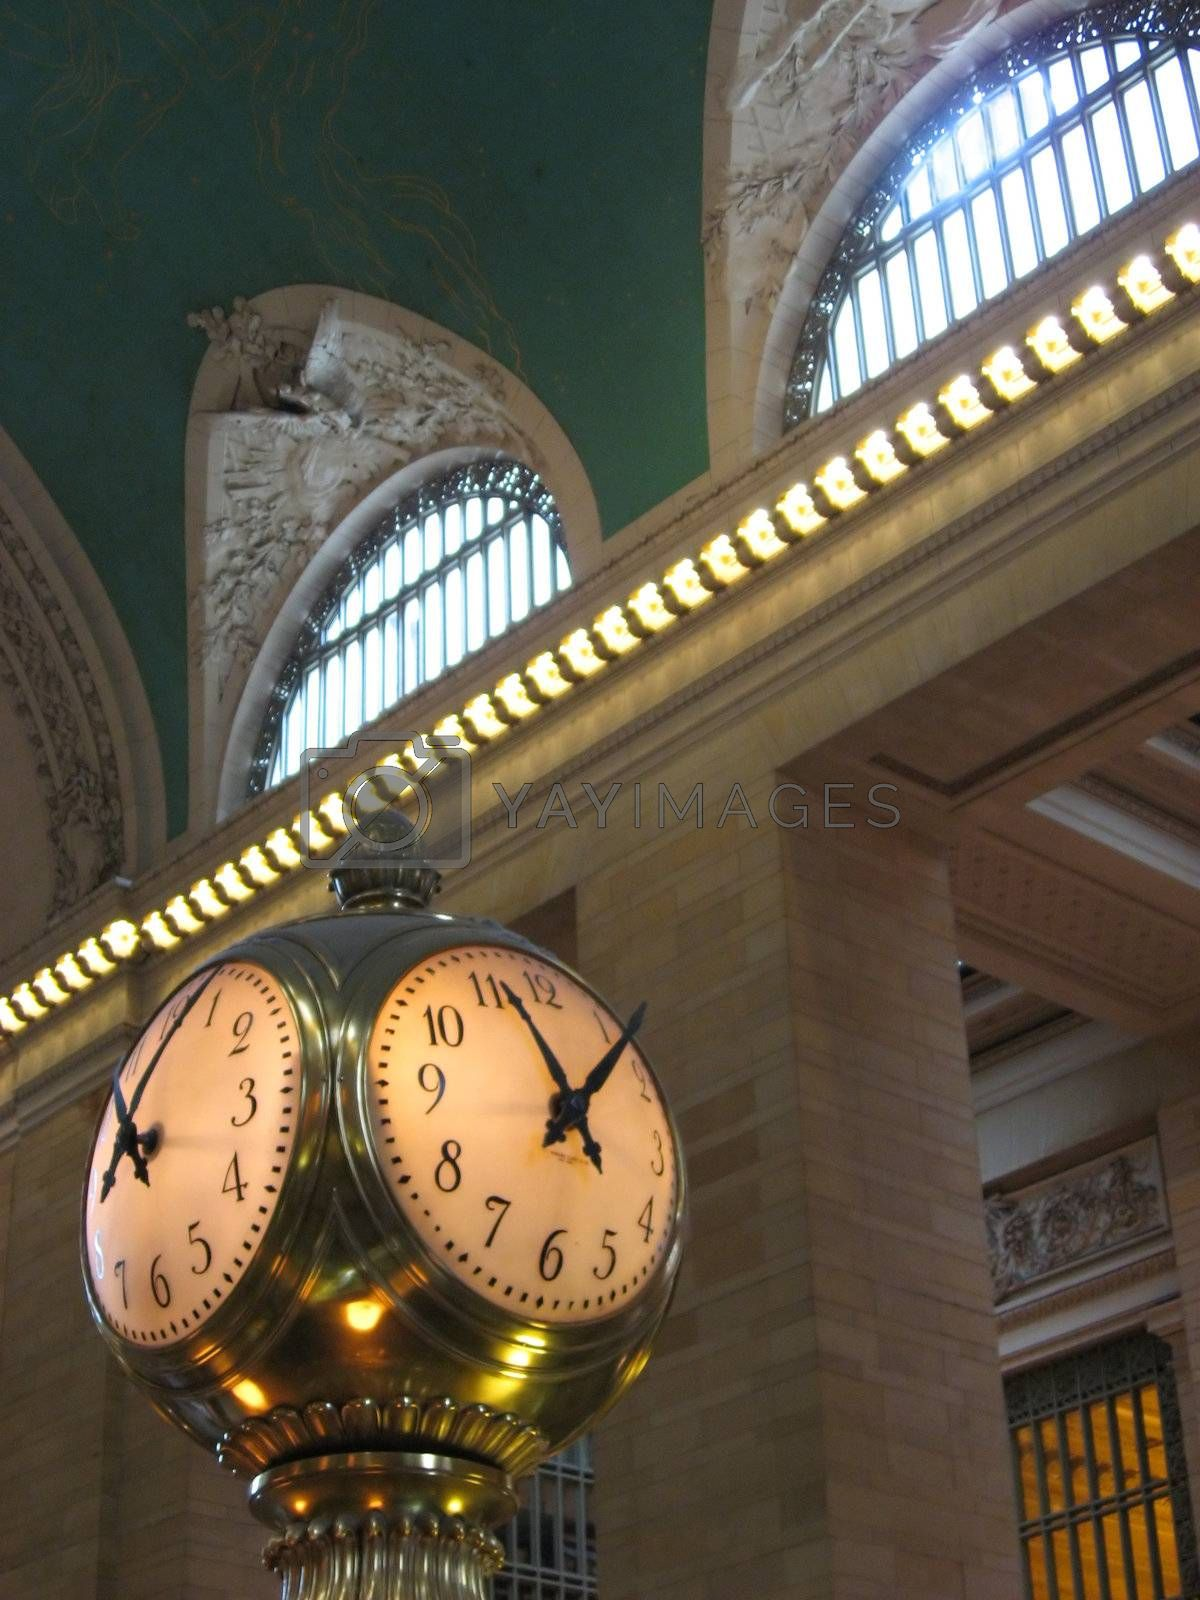 The old clock in the center of grand central station in New York City.